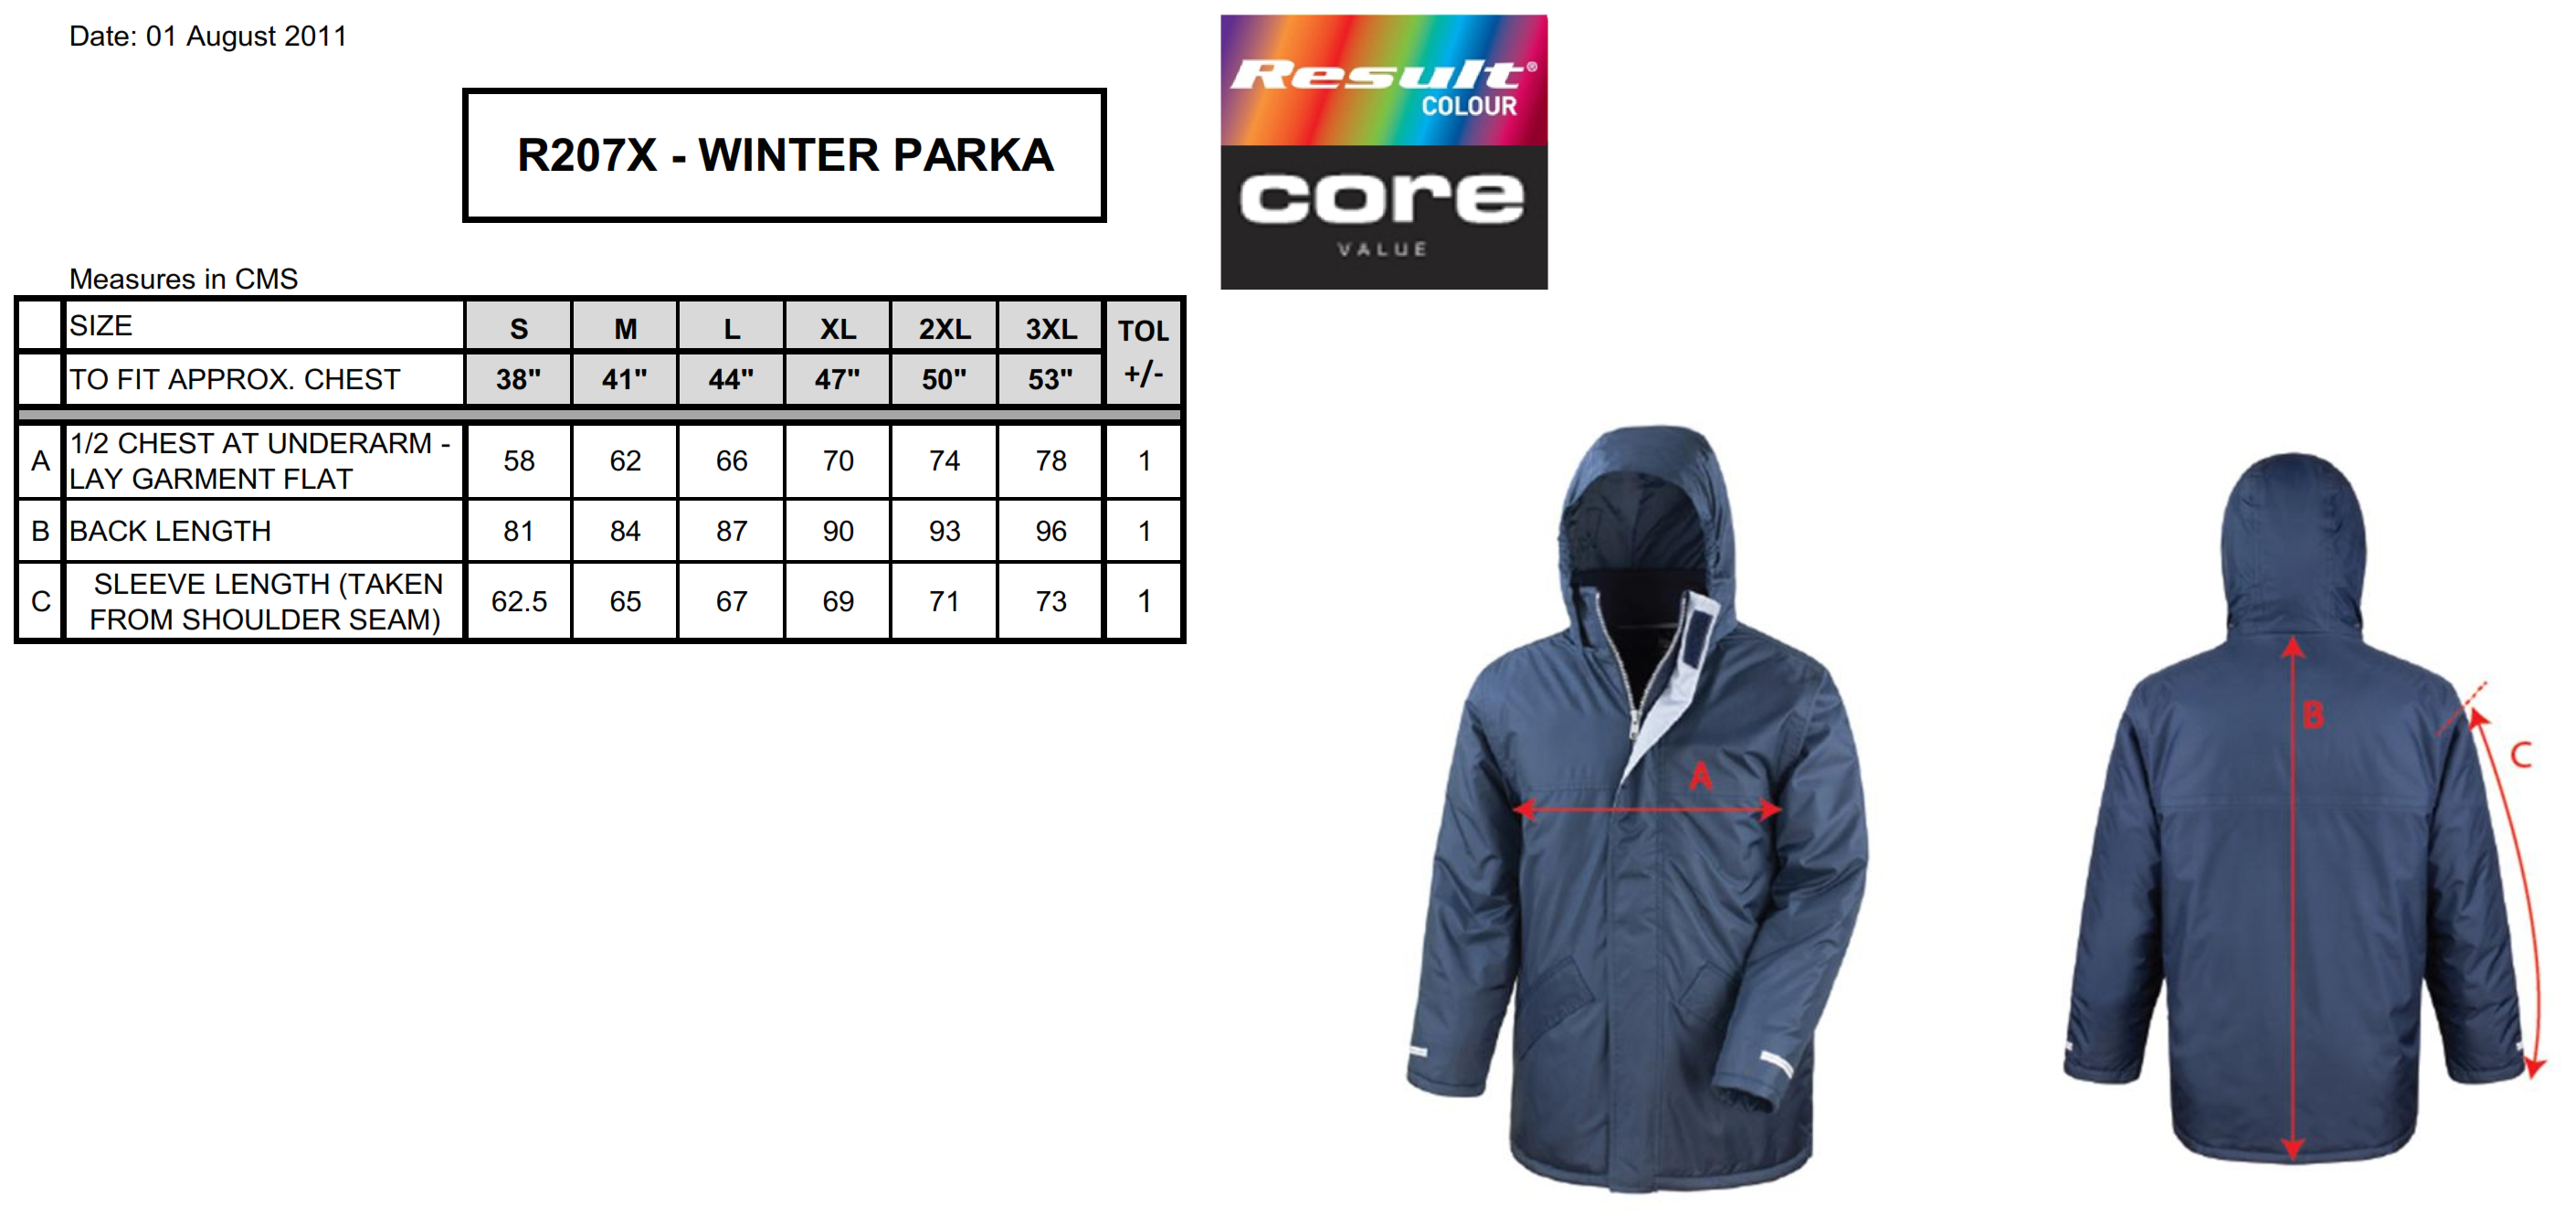 Result: Core Winter Parka R207X